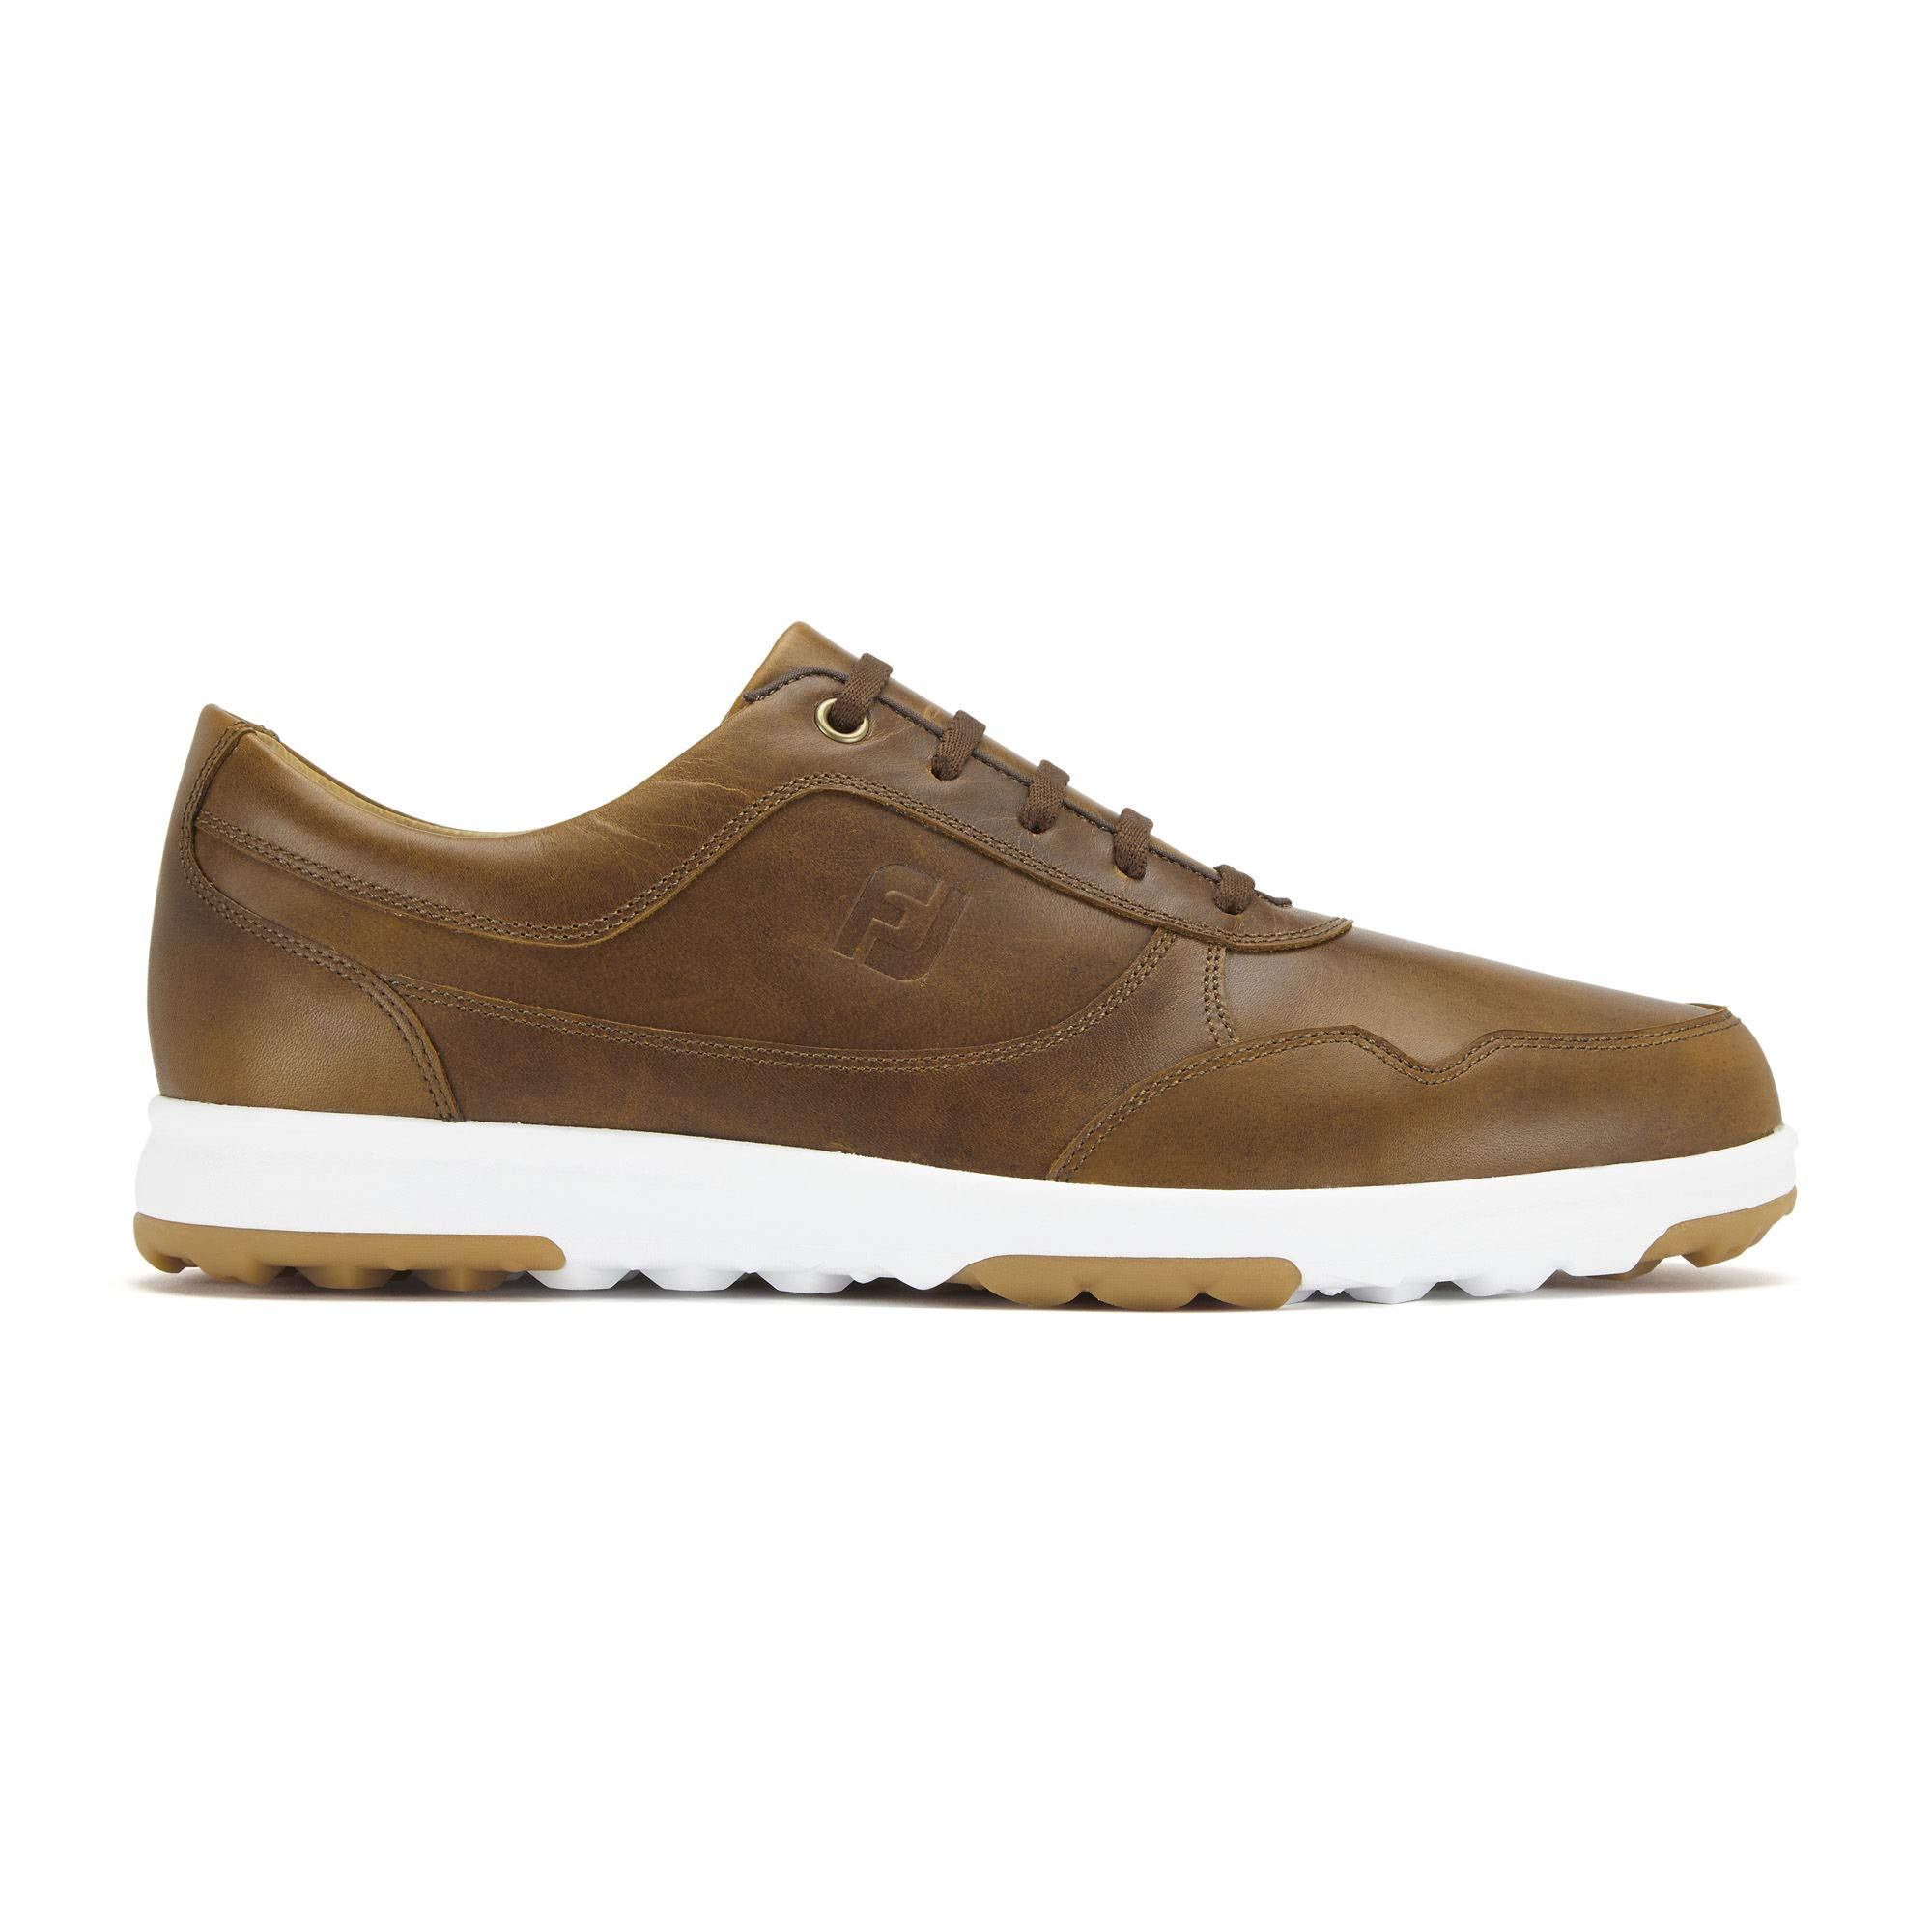 FootJoy Men's Golf Casual-Previous Seaon Style Shoes, Taupe Smooth, 10.5 M US by FootJoy